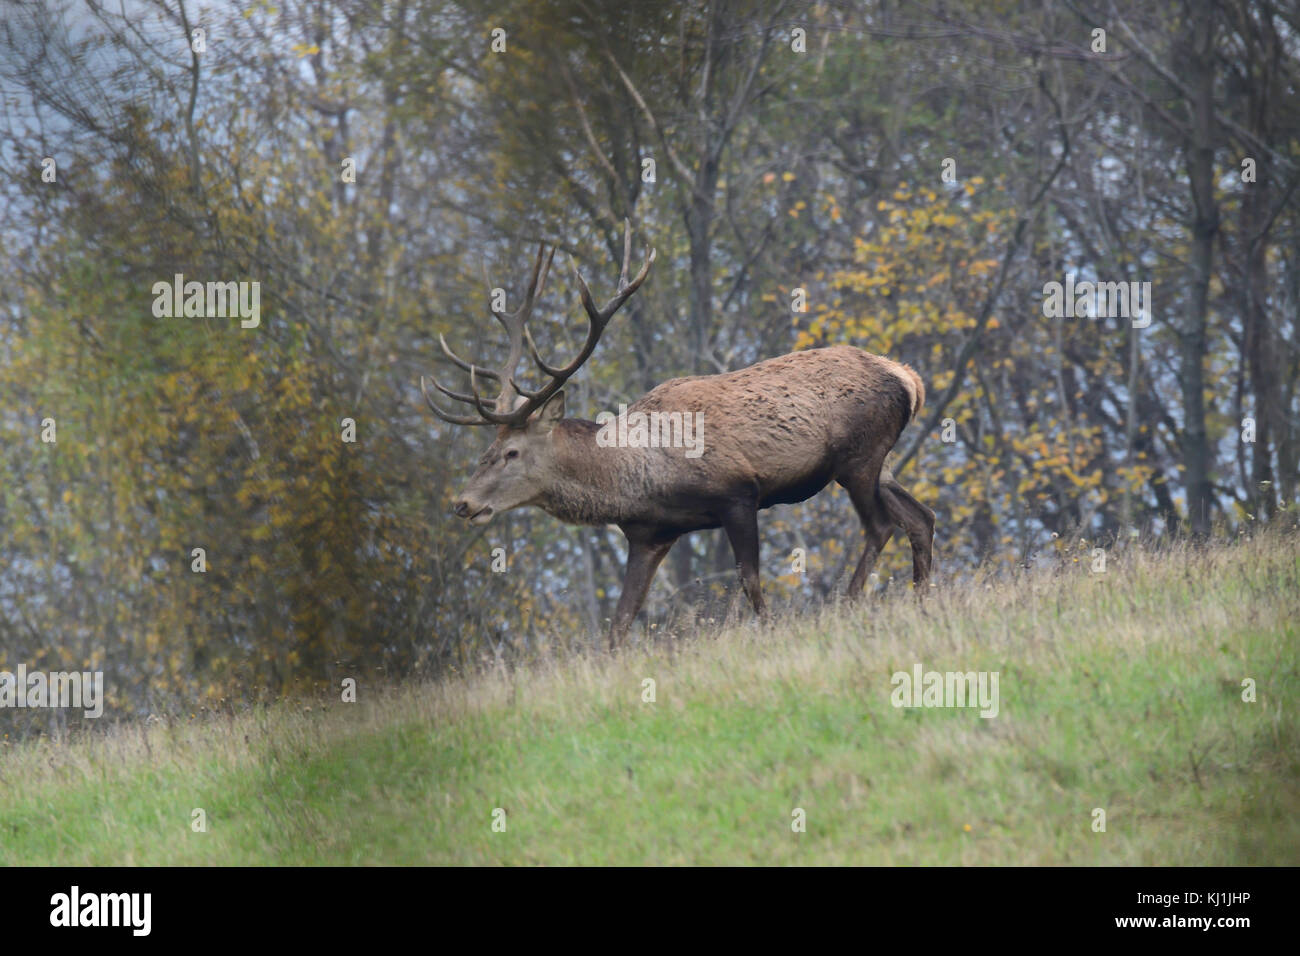 portrait of forest stag during the pairing season - Stock Image